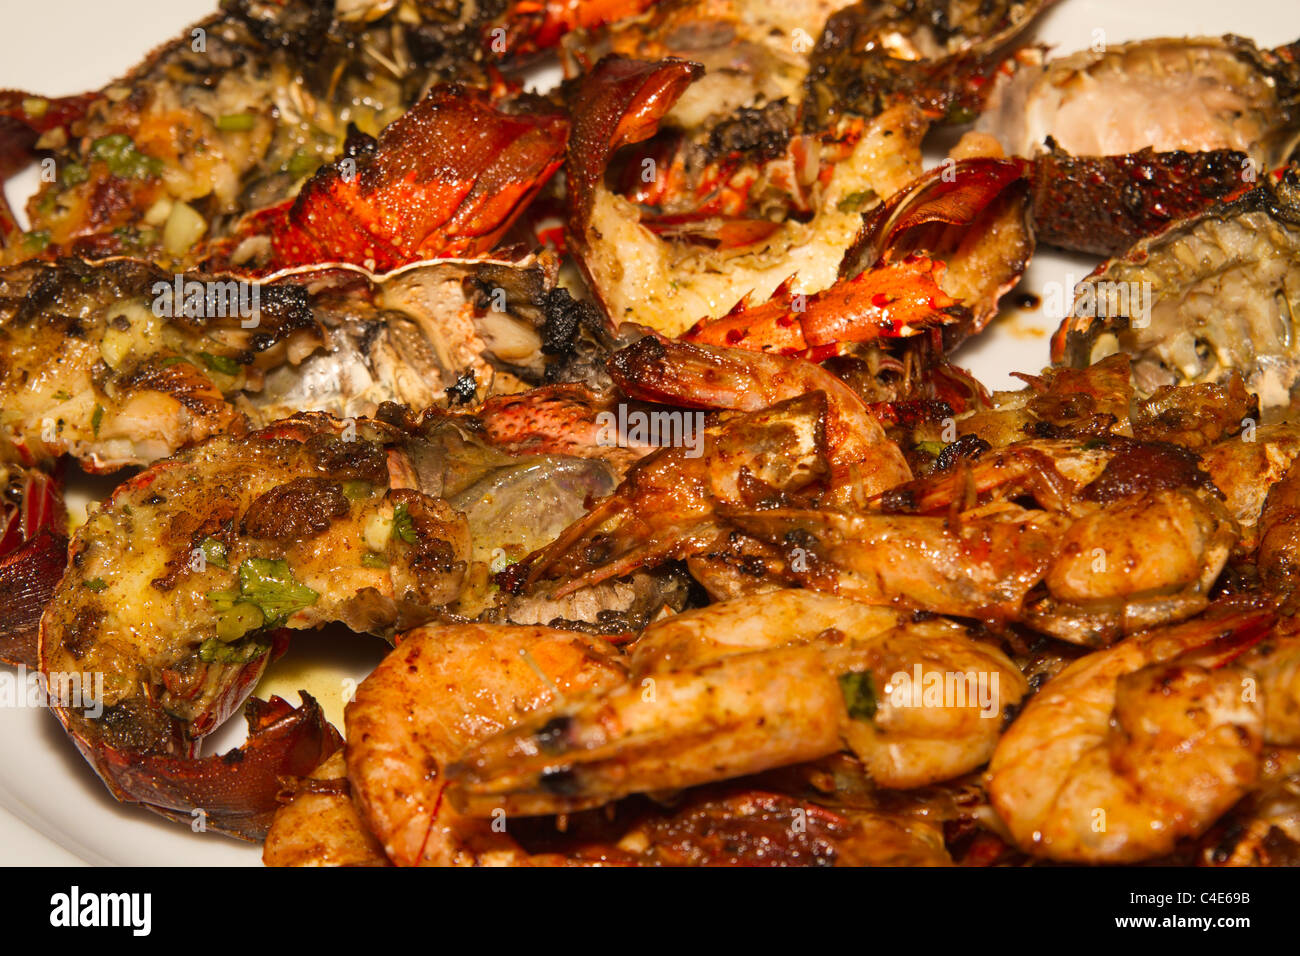 Delicious exotic bbq lobsters sri lanka indian ocean sea food delicious exotic bbq lobsters sri lanka indian ocean sea food forumfinder Choice Image